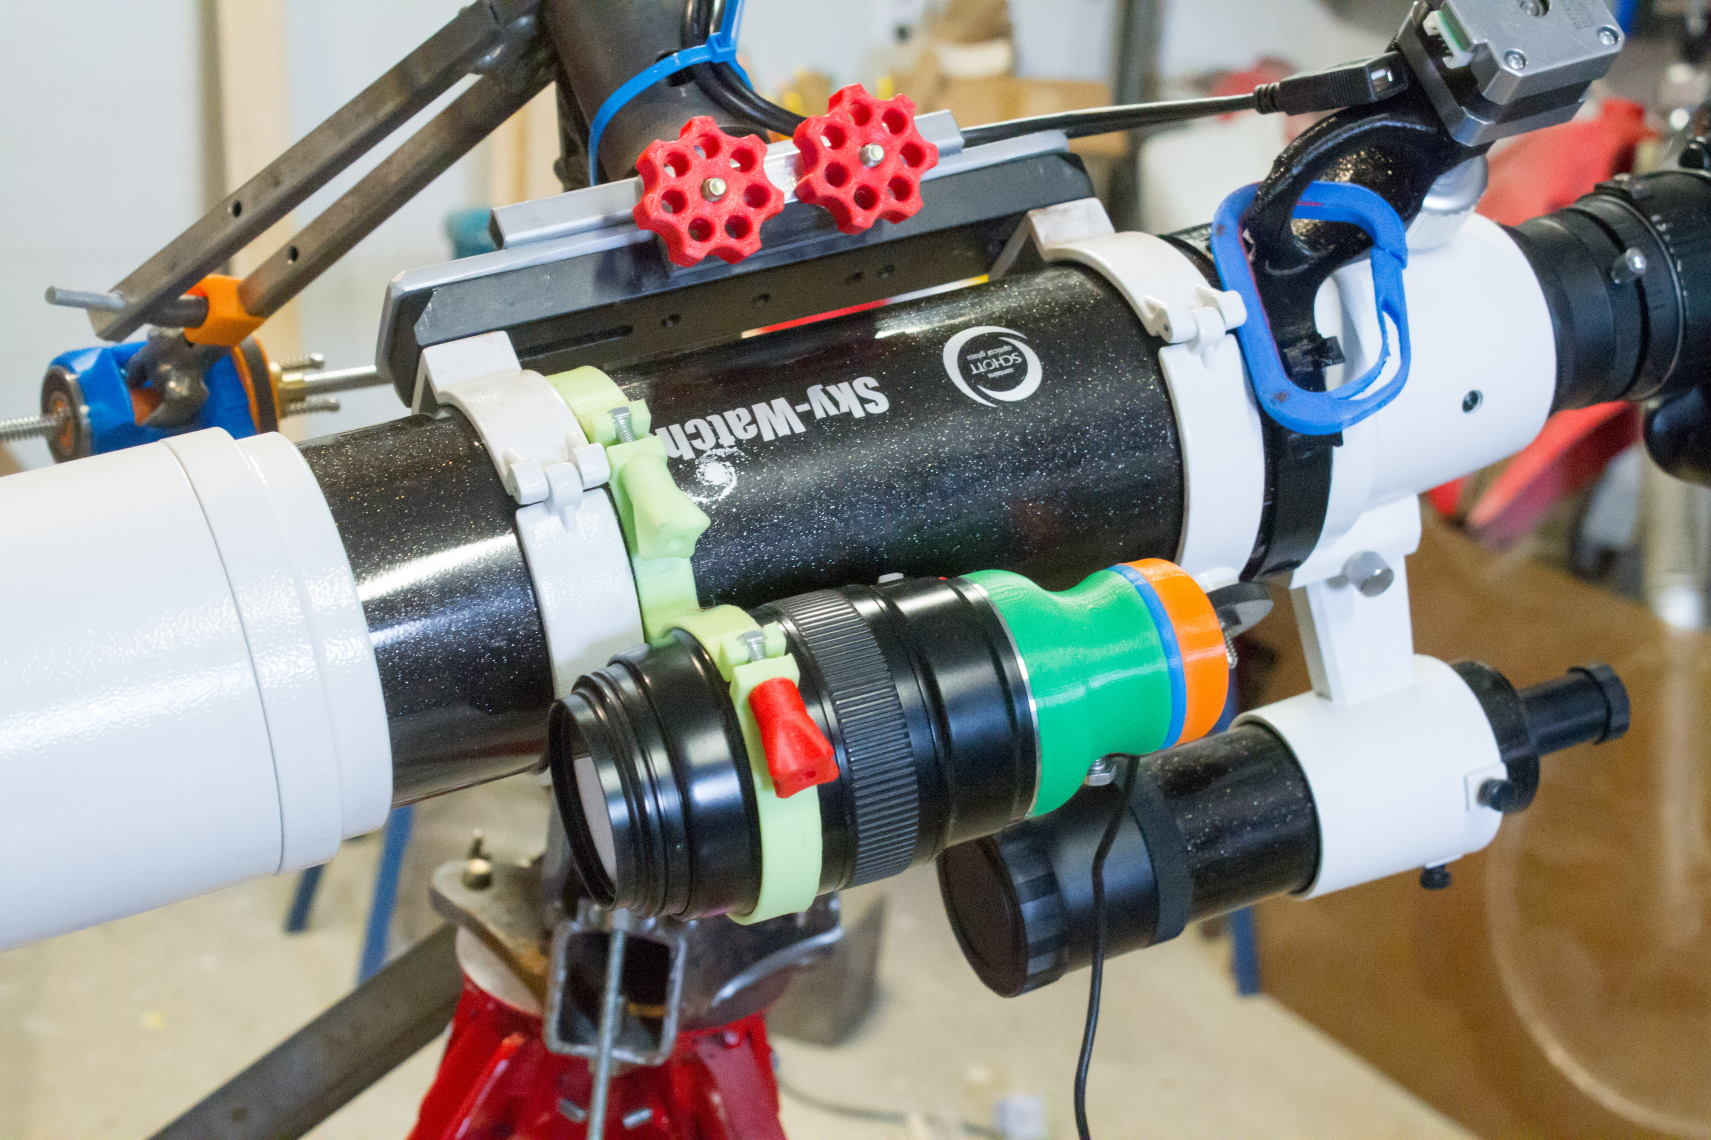 Guided Telescope Mount & Accessories (Tracker V3) #DIY